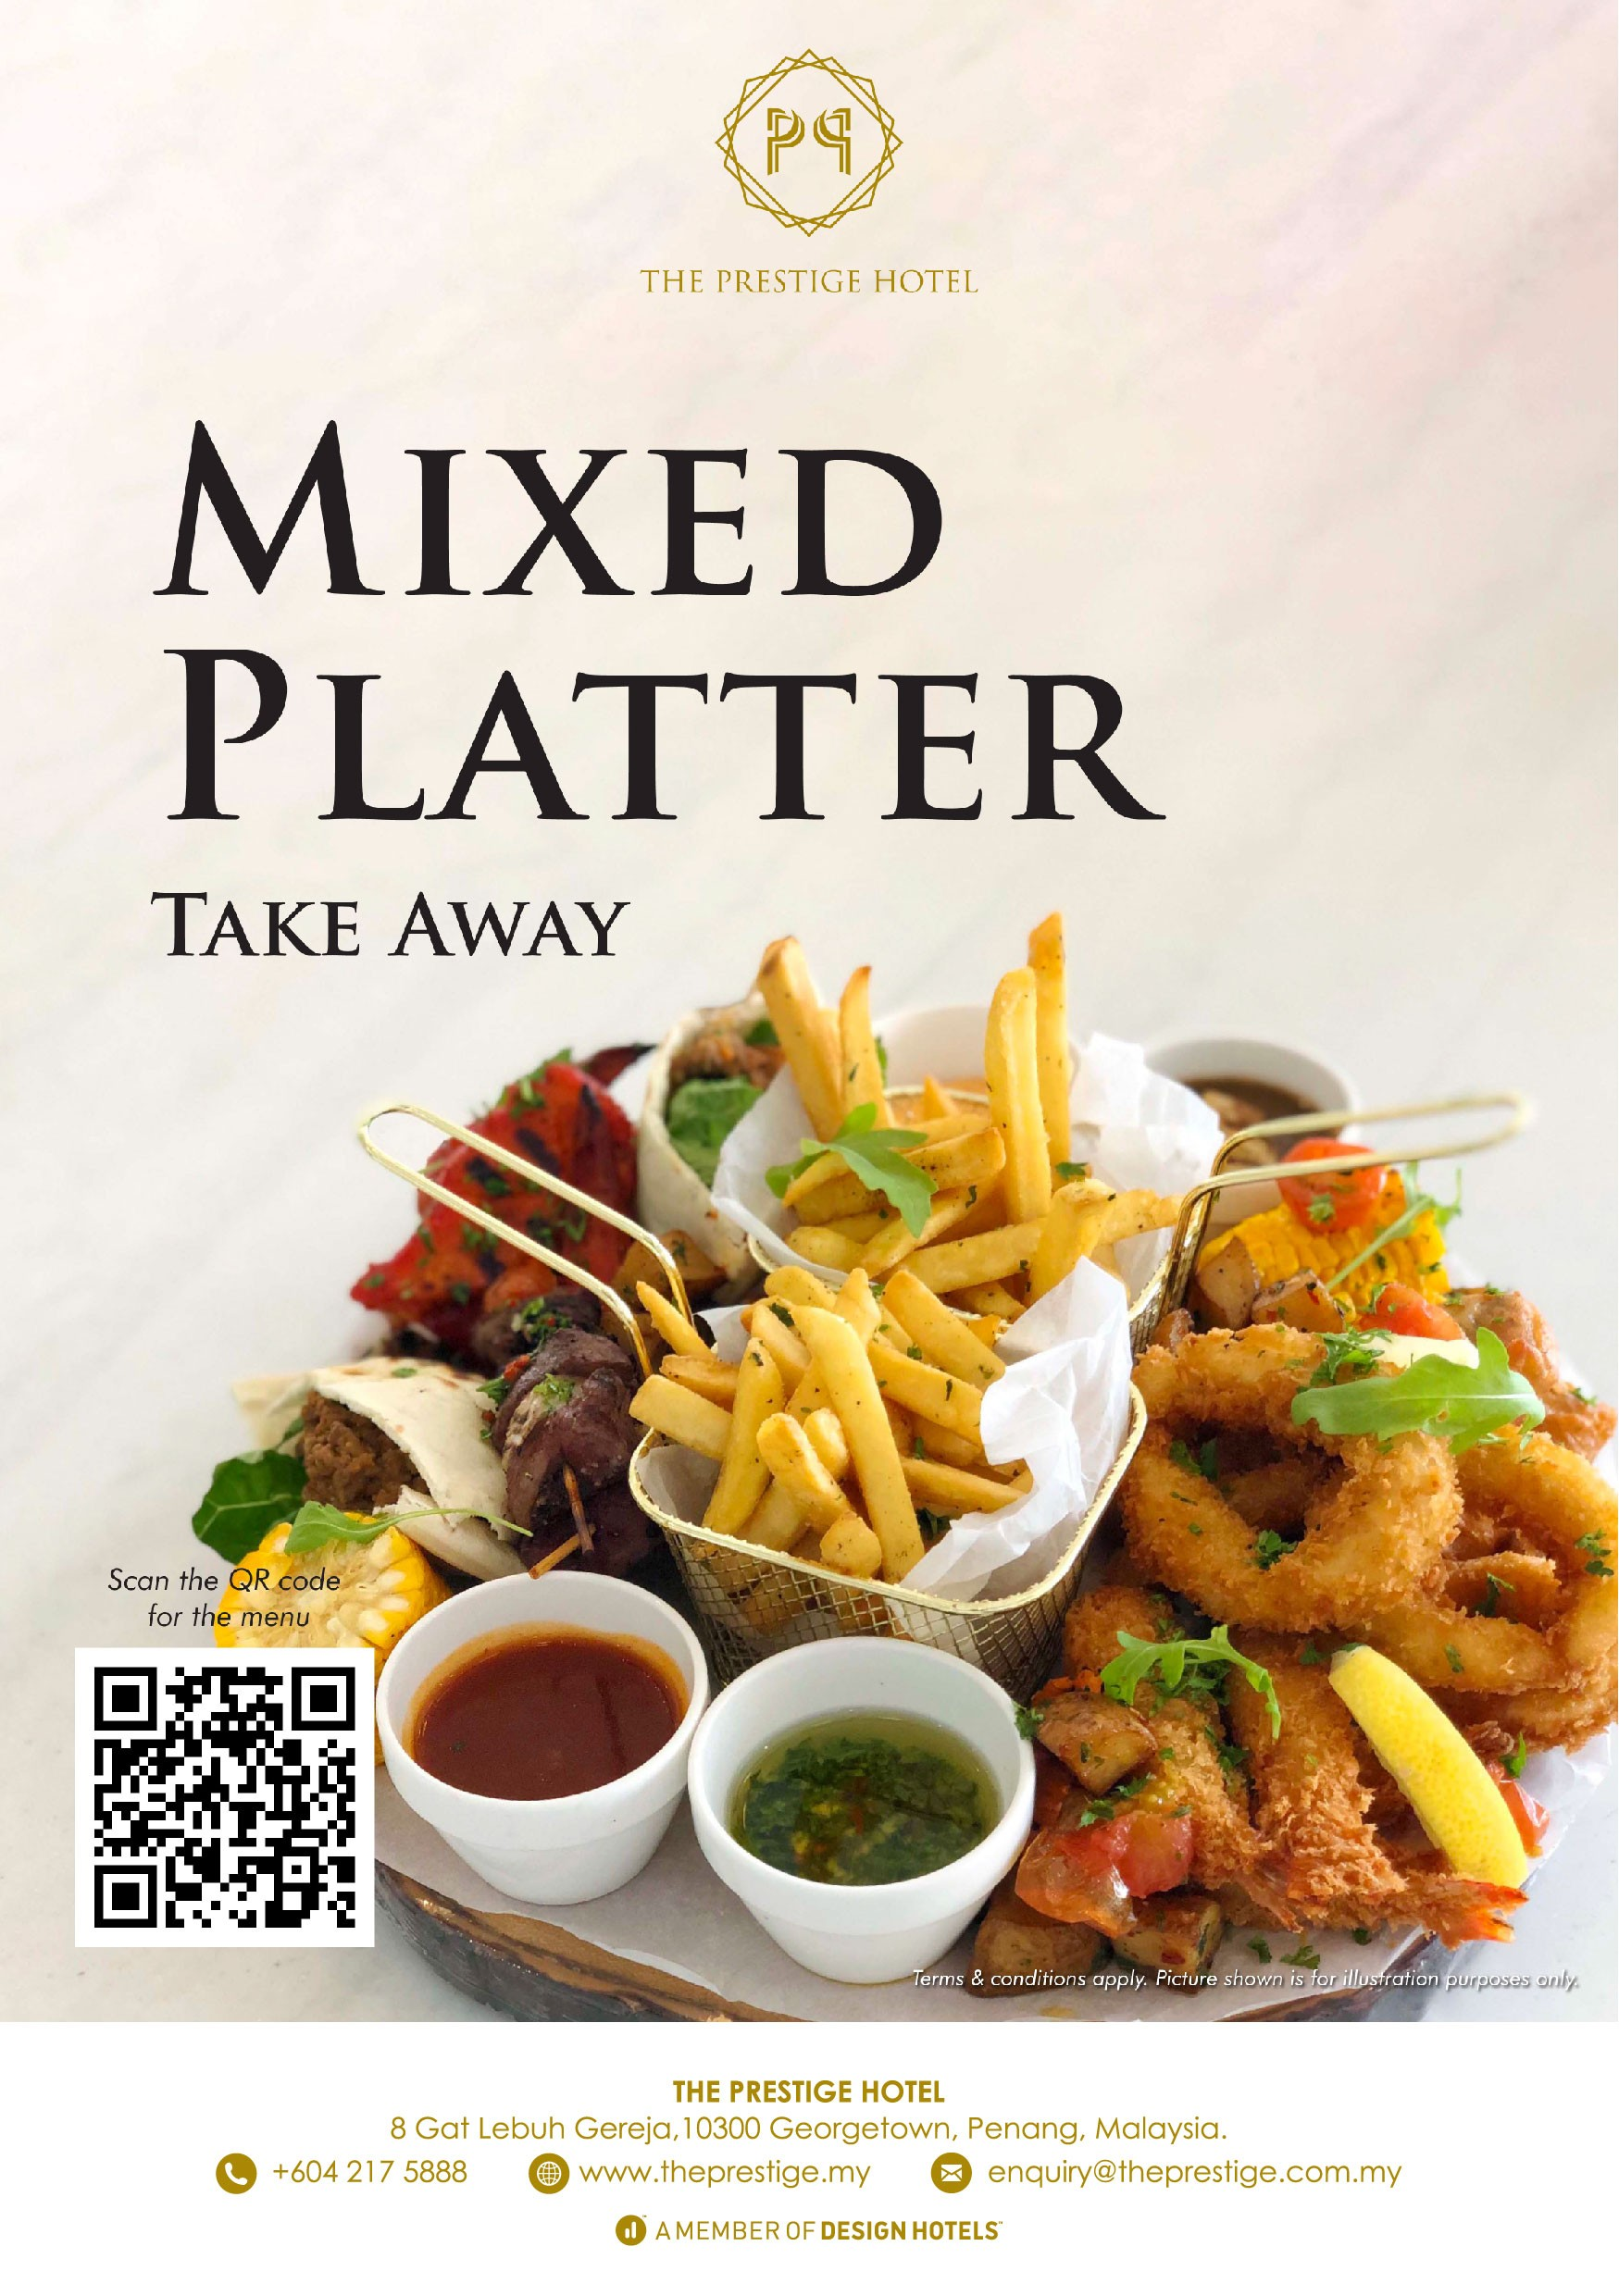 Mixed Platter Take Away by The Prestige Hotel Penang